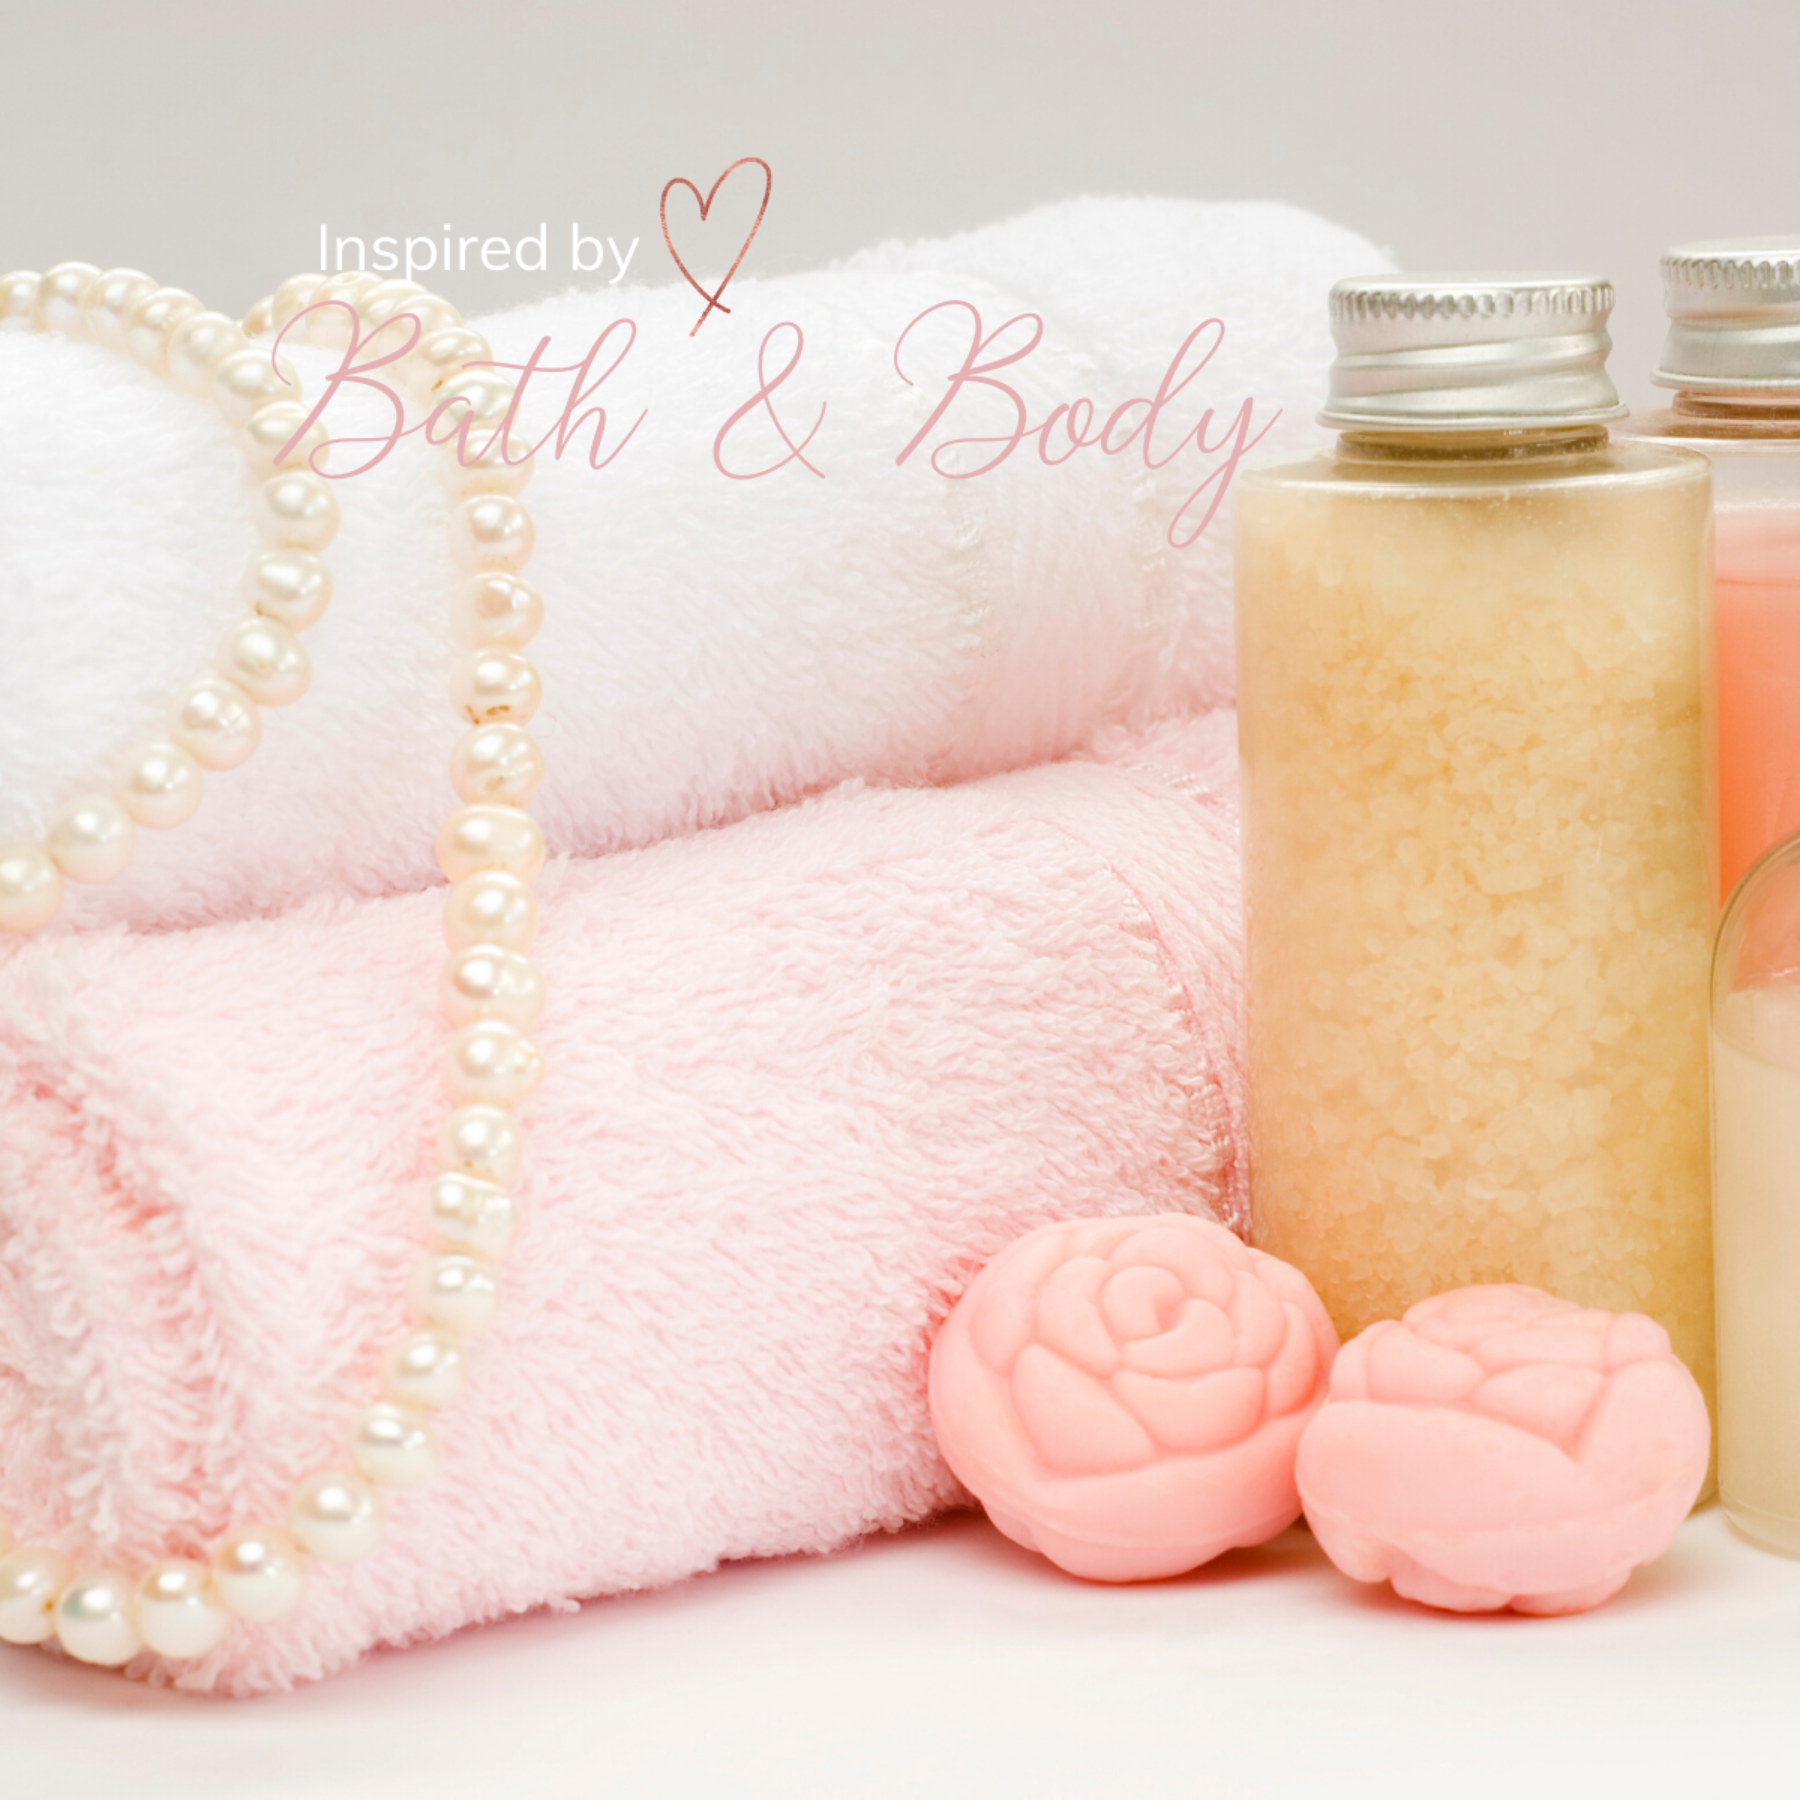 Bath and Body Scented Wax Melts